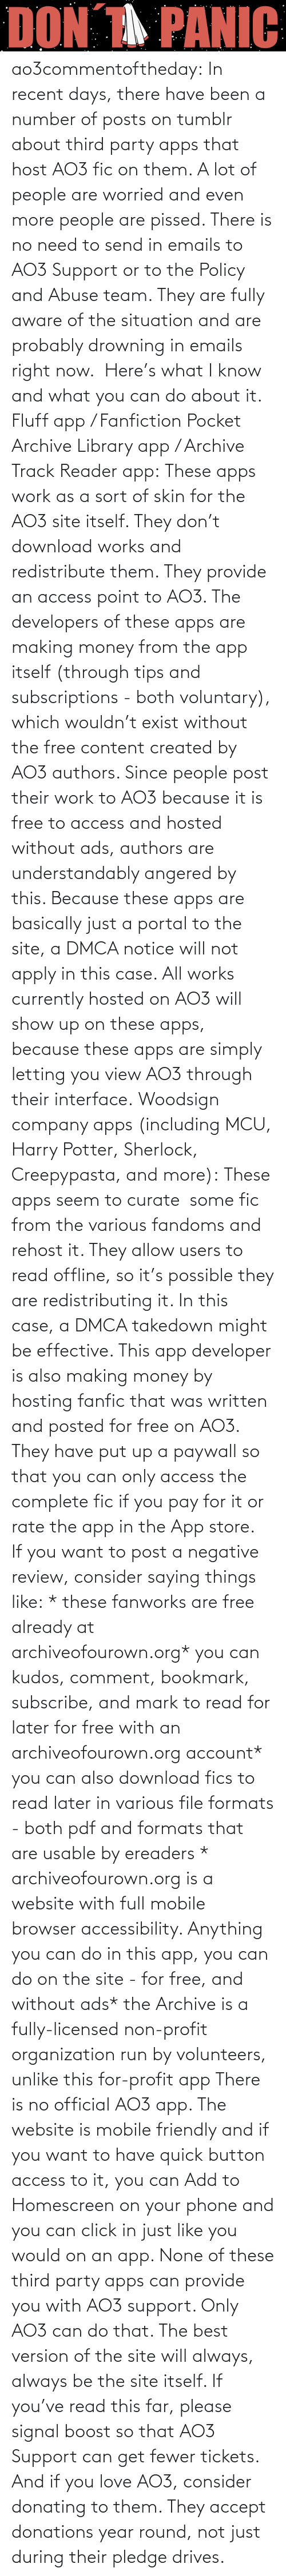 Click, Fanfiction, and Harry Potter: ao3commentoftheday: In recent days, there have been a number of posts on tumblr about third party apps that host AO3 fic on them. A lot of people are worried and even more people are pissed.  There is no need to send in emails to AO3 Support or to the Policy and Abuse team. They are fully aware of the situation and are probably drowning in emails right now. Here's what I know and what you can do about it.  Fluff app / Fanfiction Pocket Archive Library app / Archive Track Reader app: These apps work as a sort of skin for the AO3 site itself. They don't download works and redistribute them. They provide an access point to AO3.  The developers of these apps are making money from the app itself (through tips and subscriptions - both voluntary), which wouldn't exist without the free content created by AO3 authors. Since people post their work to AO3 because it is free to access and hosted without ads, authors are understandably angered by this.  Because these apps are basically just a portal to the site, a DMCA notice will not apply in this case. All works currently hosted on AO3 will show up on these apps, because these apps are simply letting you view AO3 through their interface. Woodsign company apps (including MCU, Harry Potter, Sherlock, Creepypasta, and more): These apps seem to curate some fic from the various fandoms and rehost it. They allow users to read offline, so it's possible they are redistributing it. In this case, a DMCA takedown might be effective.  This app developer is also making money by hosting fanfic that was written and posted for free on AO3. They have put up a paywall so that you can only access the complete fic if you pay for it or rate the app in the App store. If you want to post a negative review, consider saying things like: * these fanworks are free already at archiveofourown.org* you can kudos, comment, bookmark, subscribe, and mark to read for later for free with an archiveofourown.org account* you c